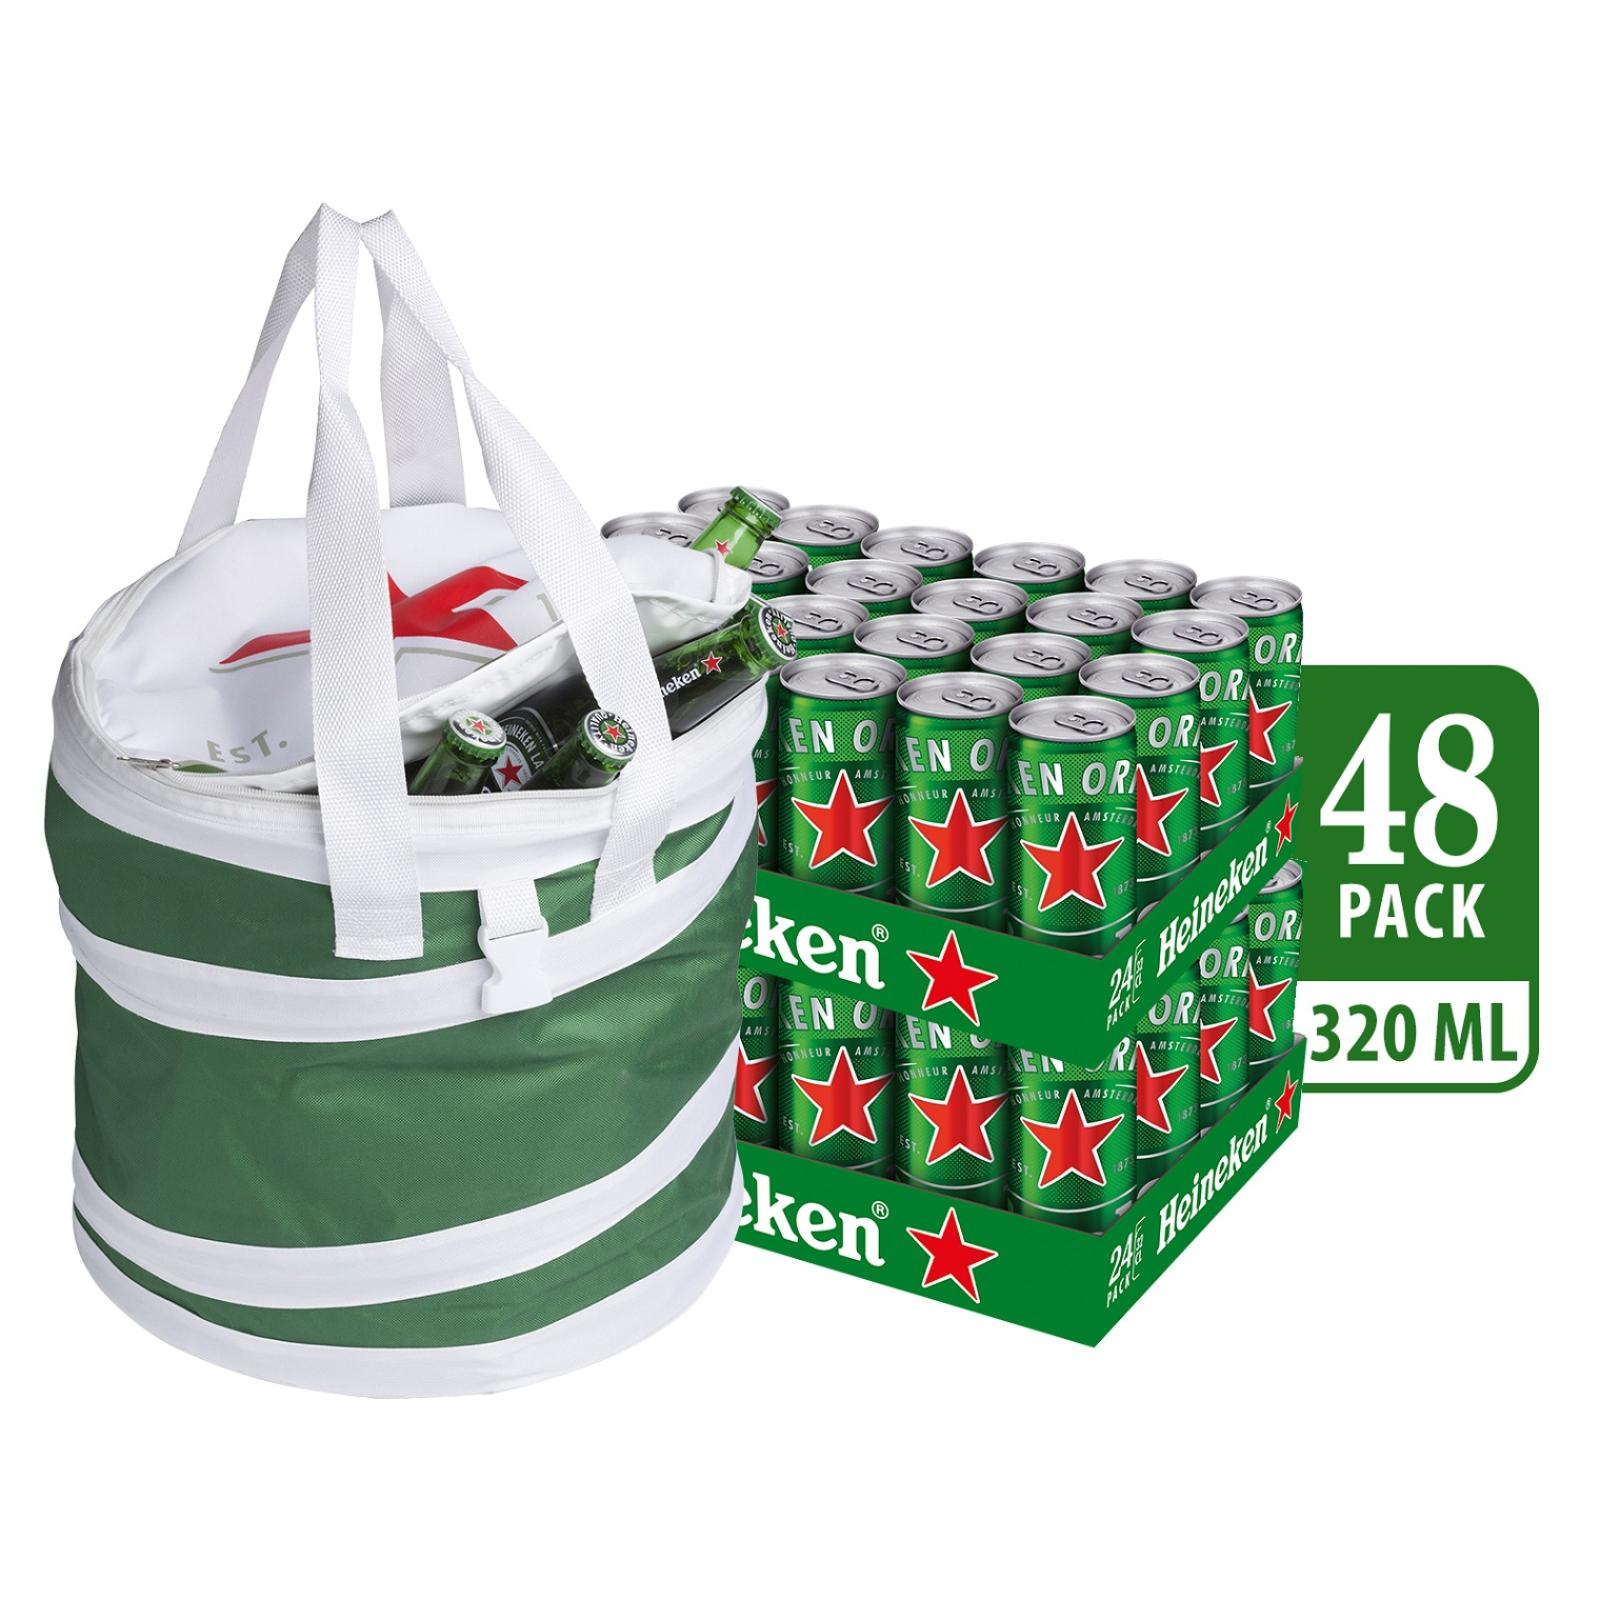 Heineken Lager Beer Can 48 x 320ml - Case